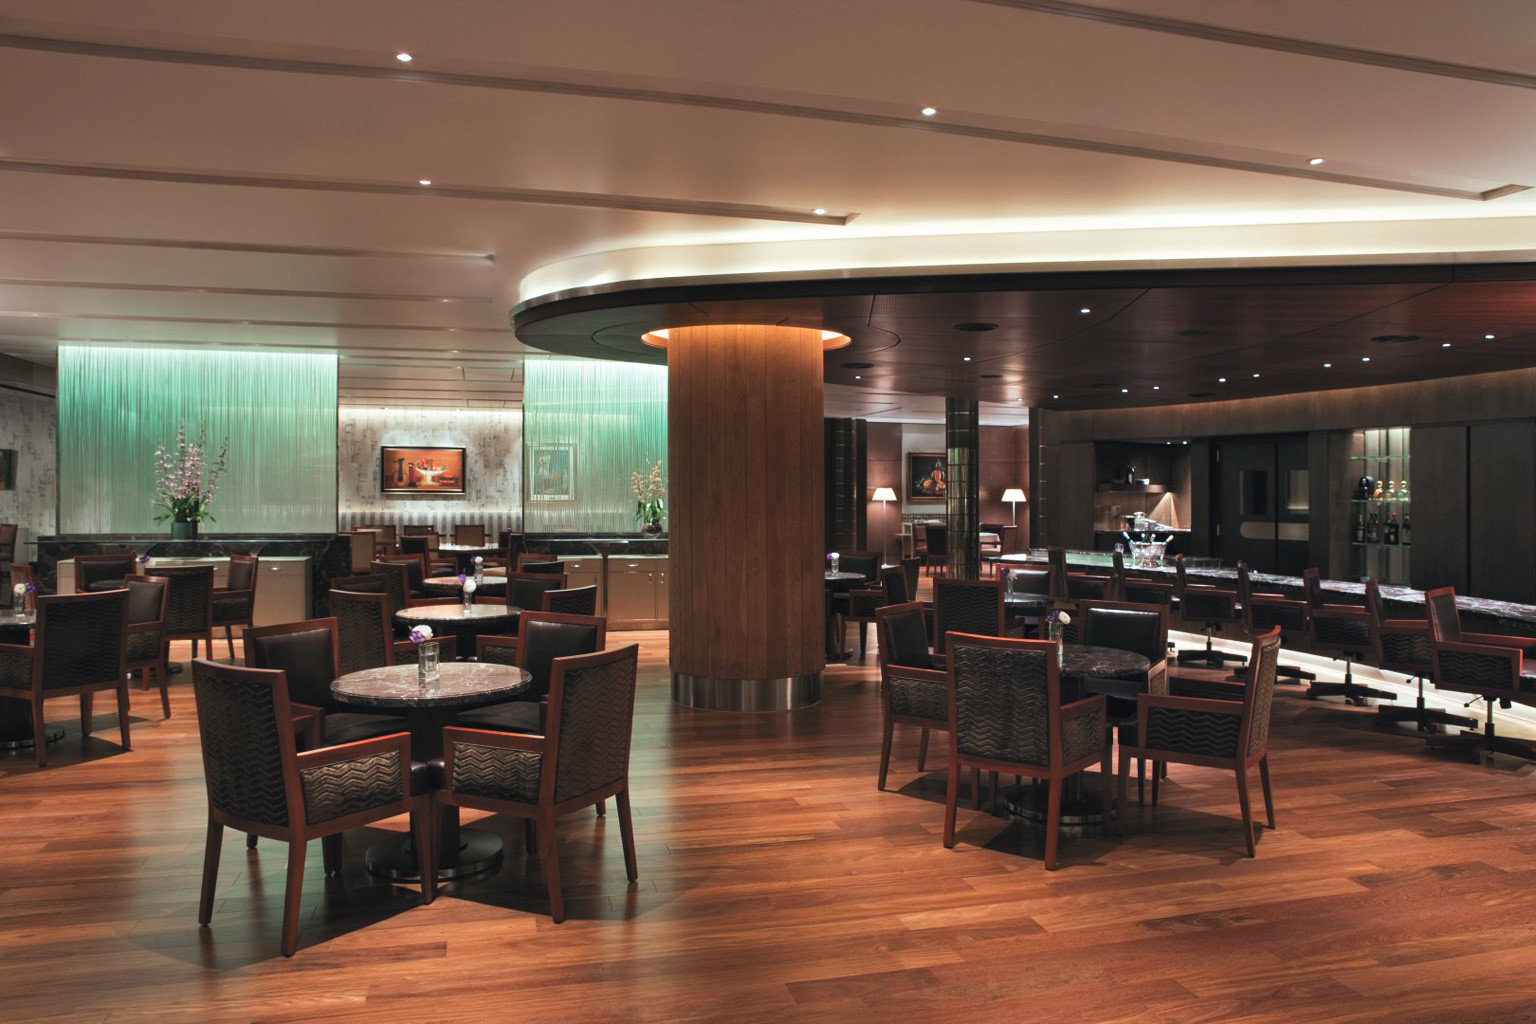 City Dining Drink Eat restaurant cafeteria Lobby café lighting function hall Bar conference hall convention center food court auditorium